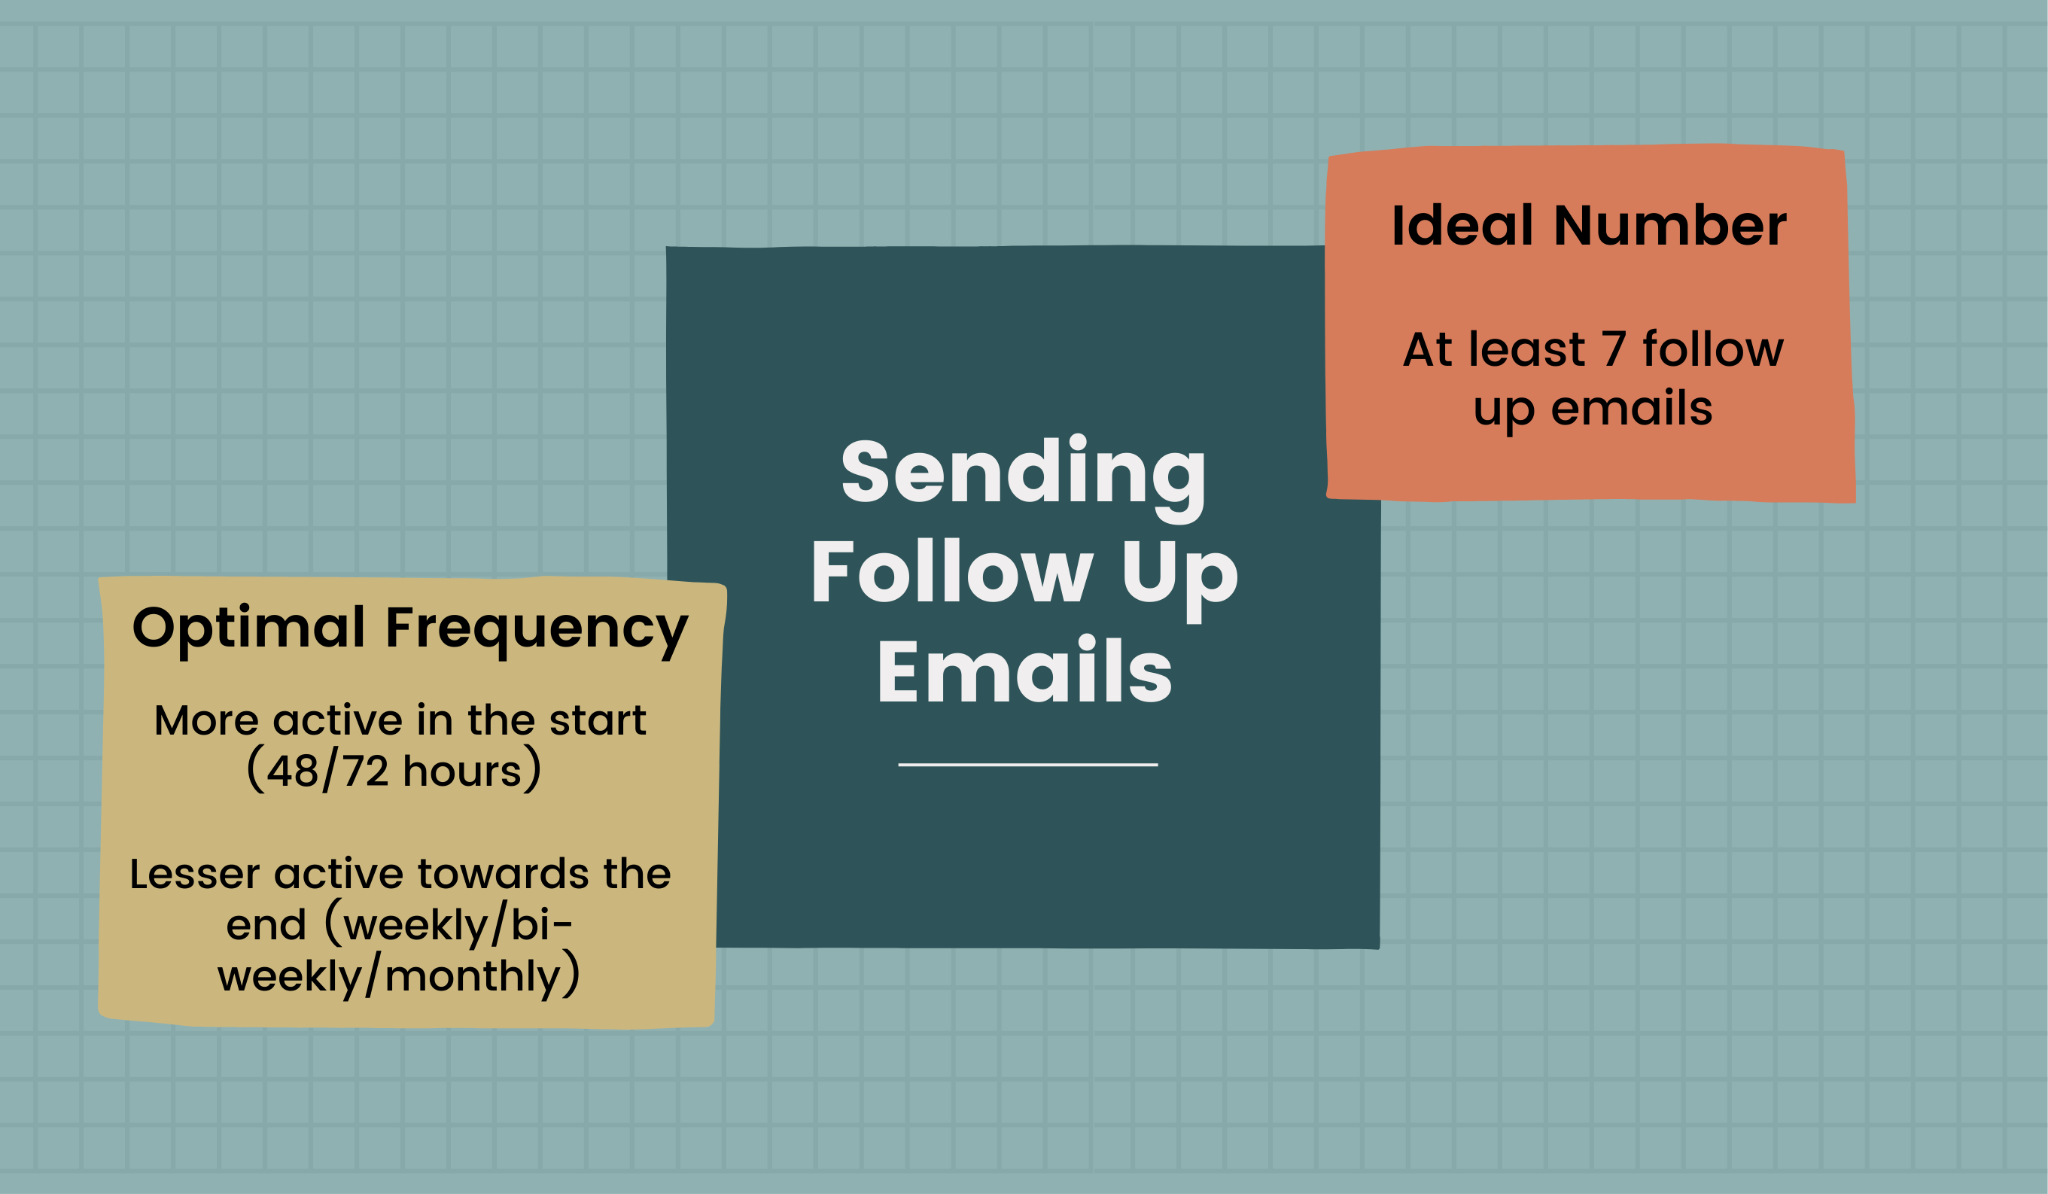 The right frequency and number for sending follow up emails